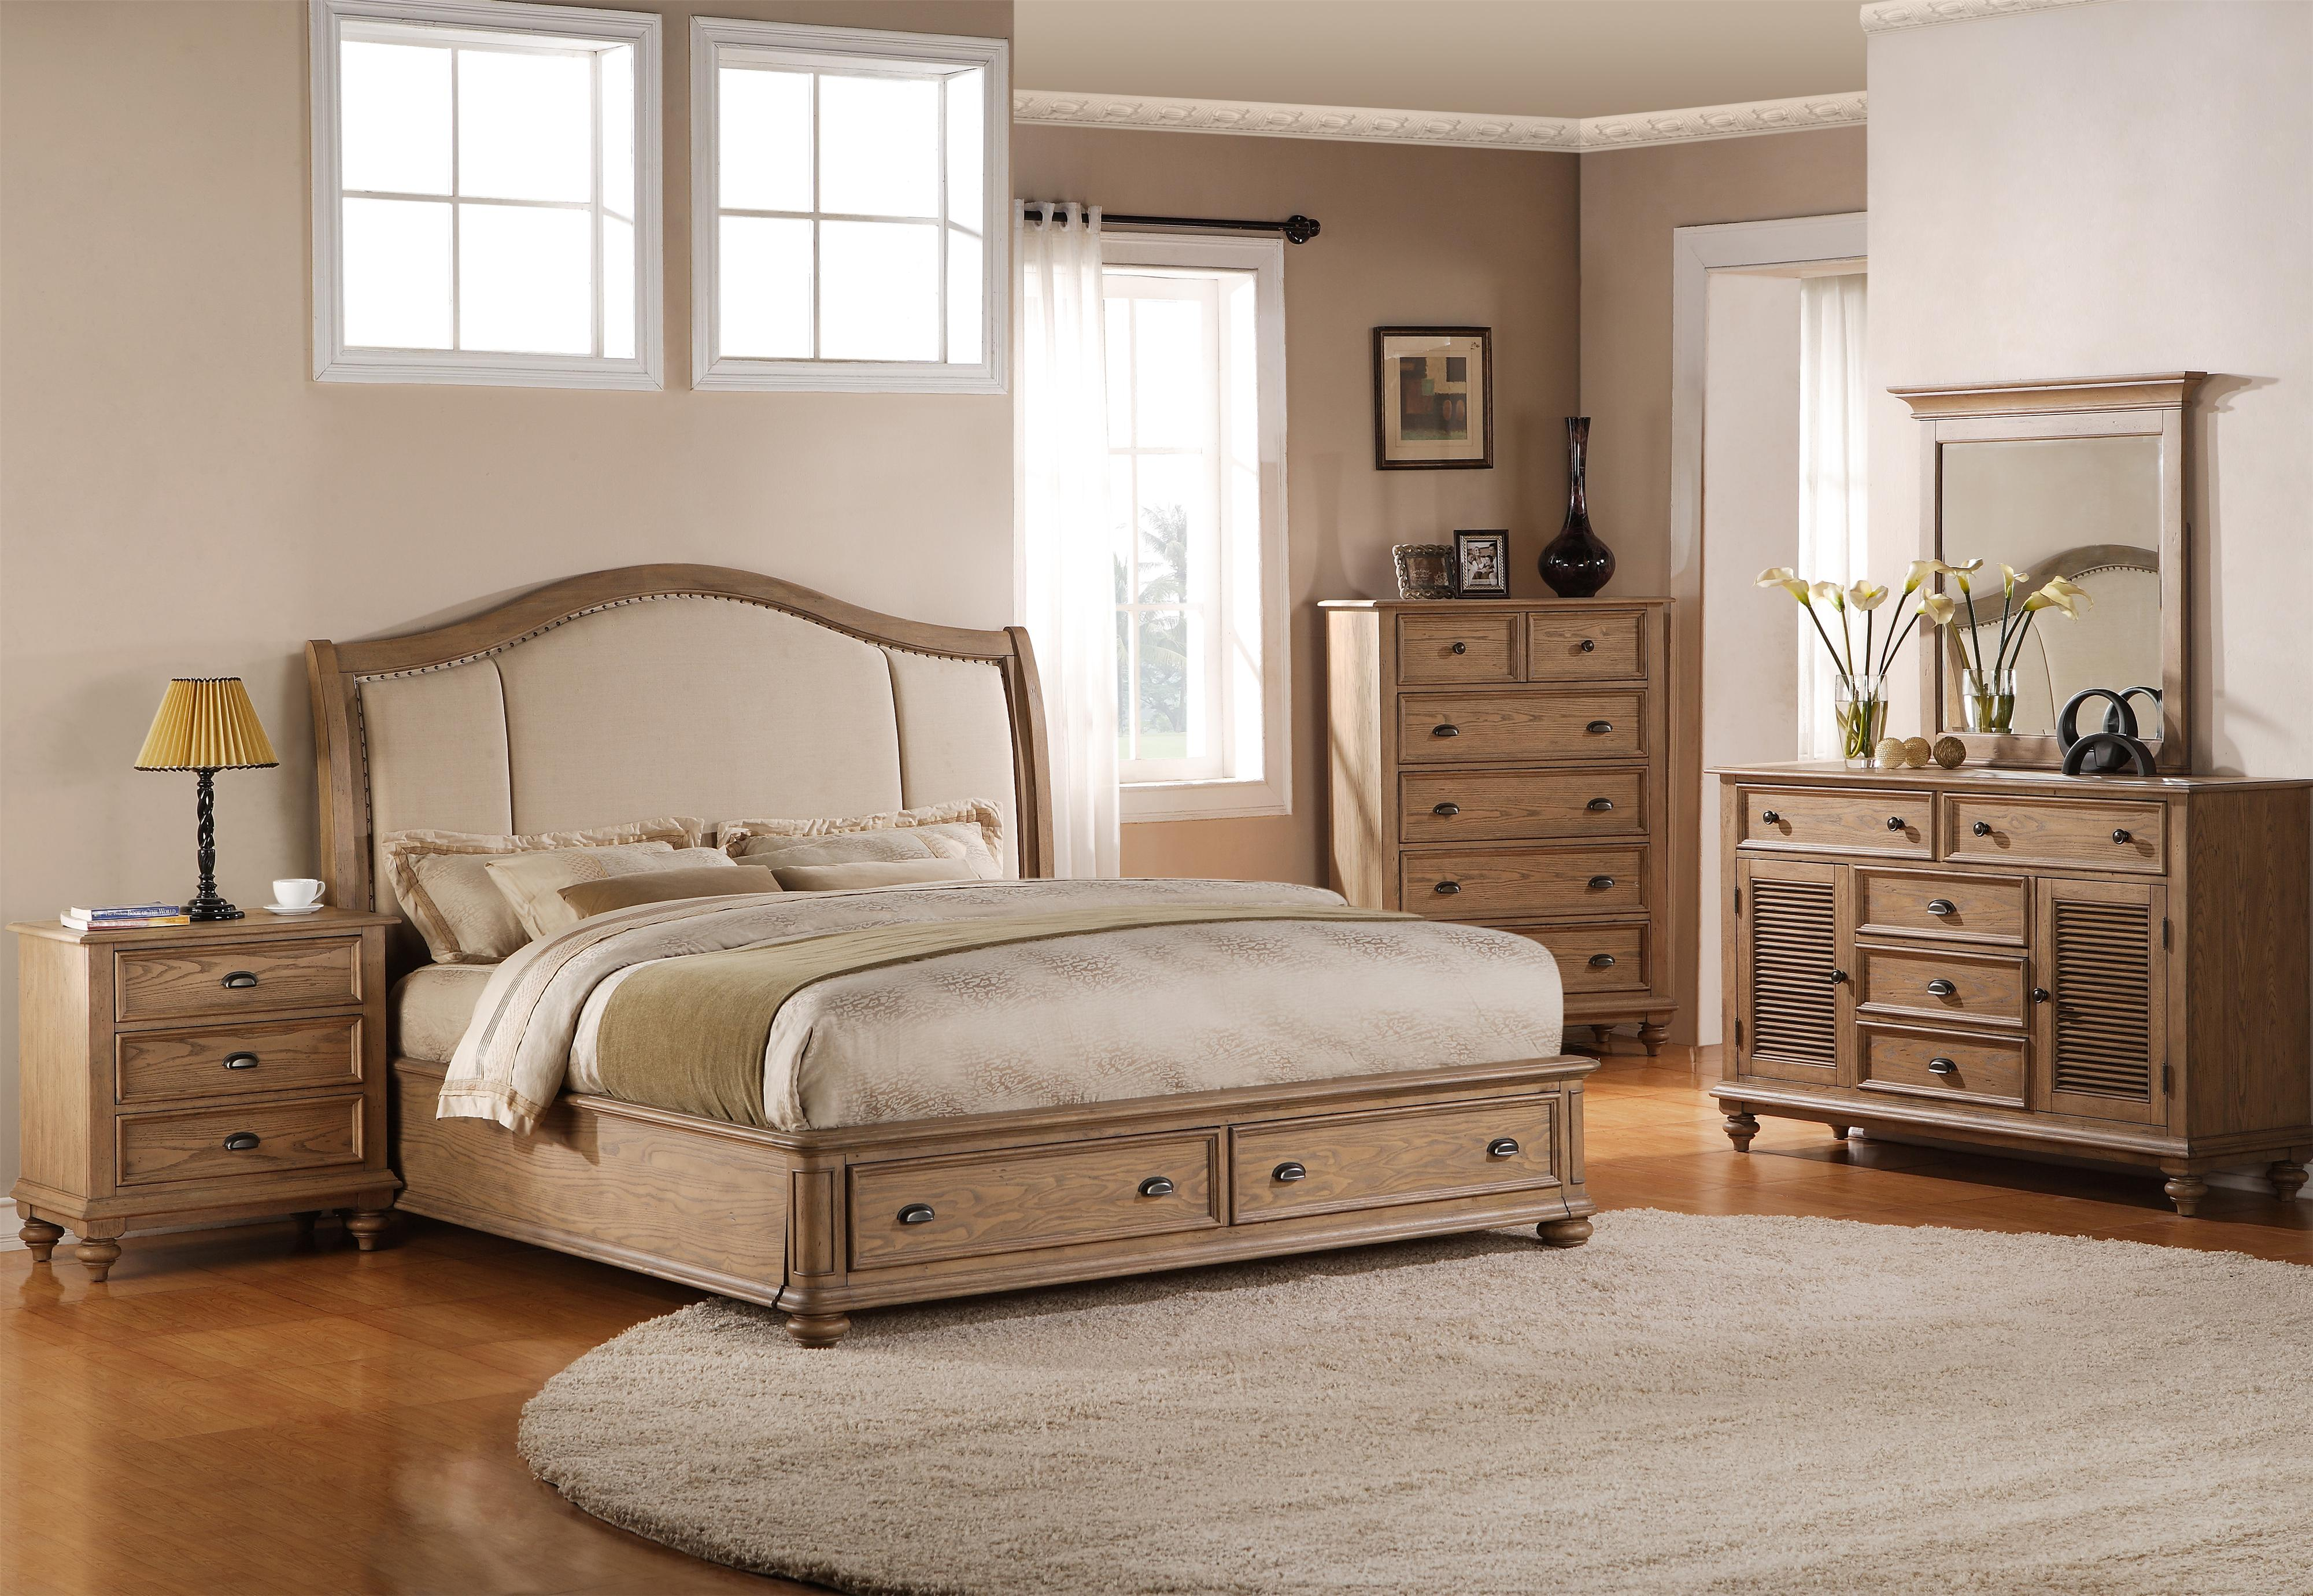 Riverside Furniture Coventry Tall 5 Drawer Chest With Bun Feet Knight Furniture Mattress